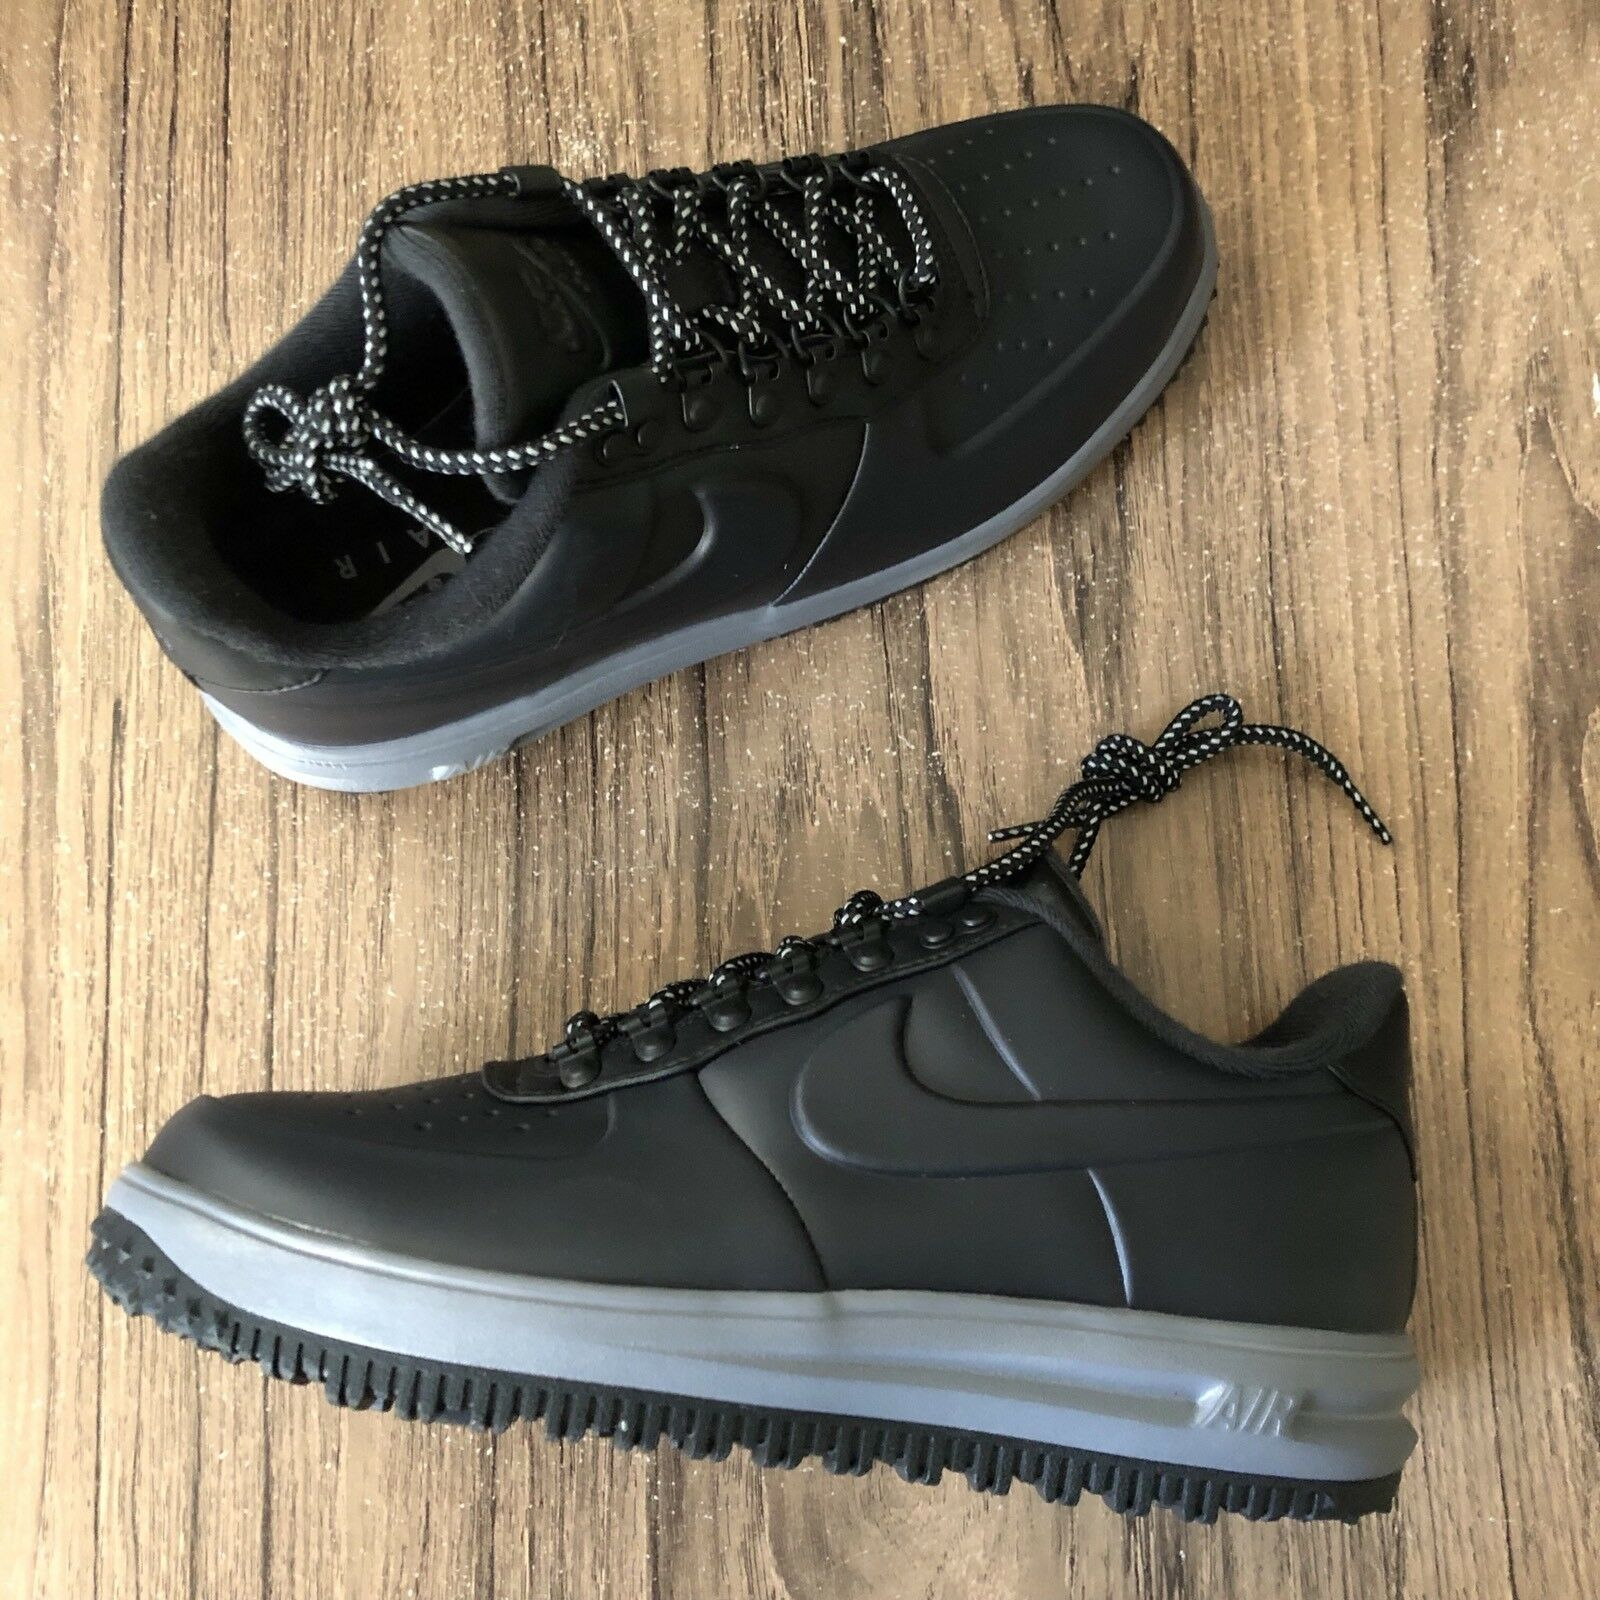 A1211 Nike LF1 Lunar Force 1 AA1125-004 Grey Black Duckboots Mens Size 10 NEW